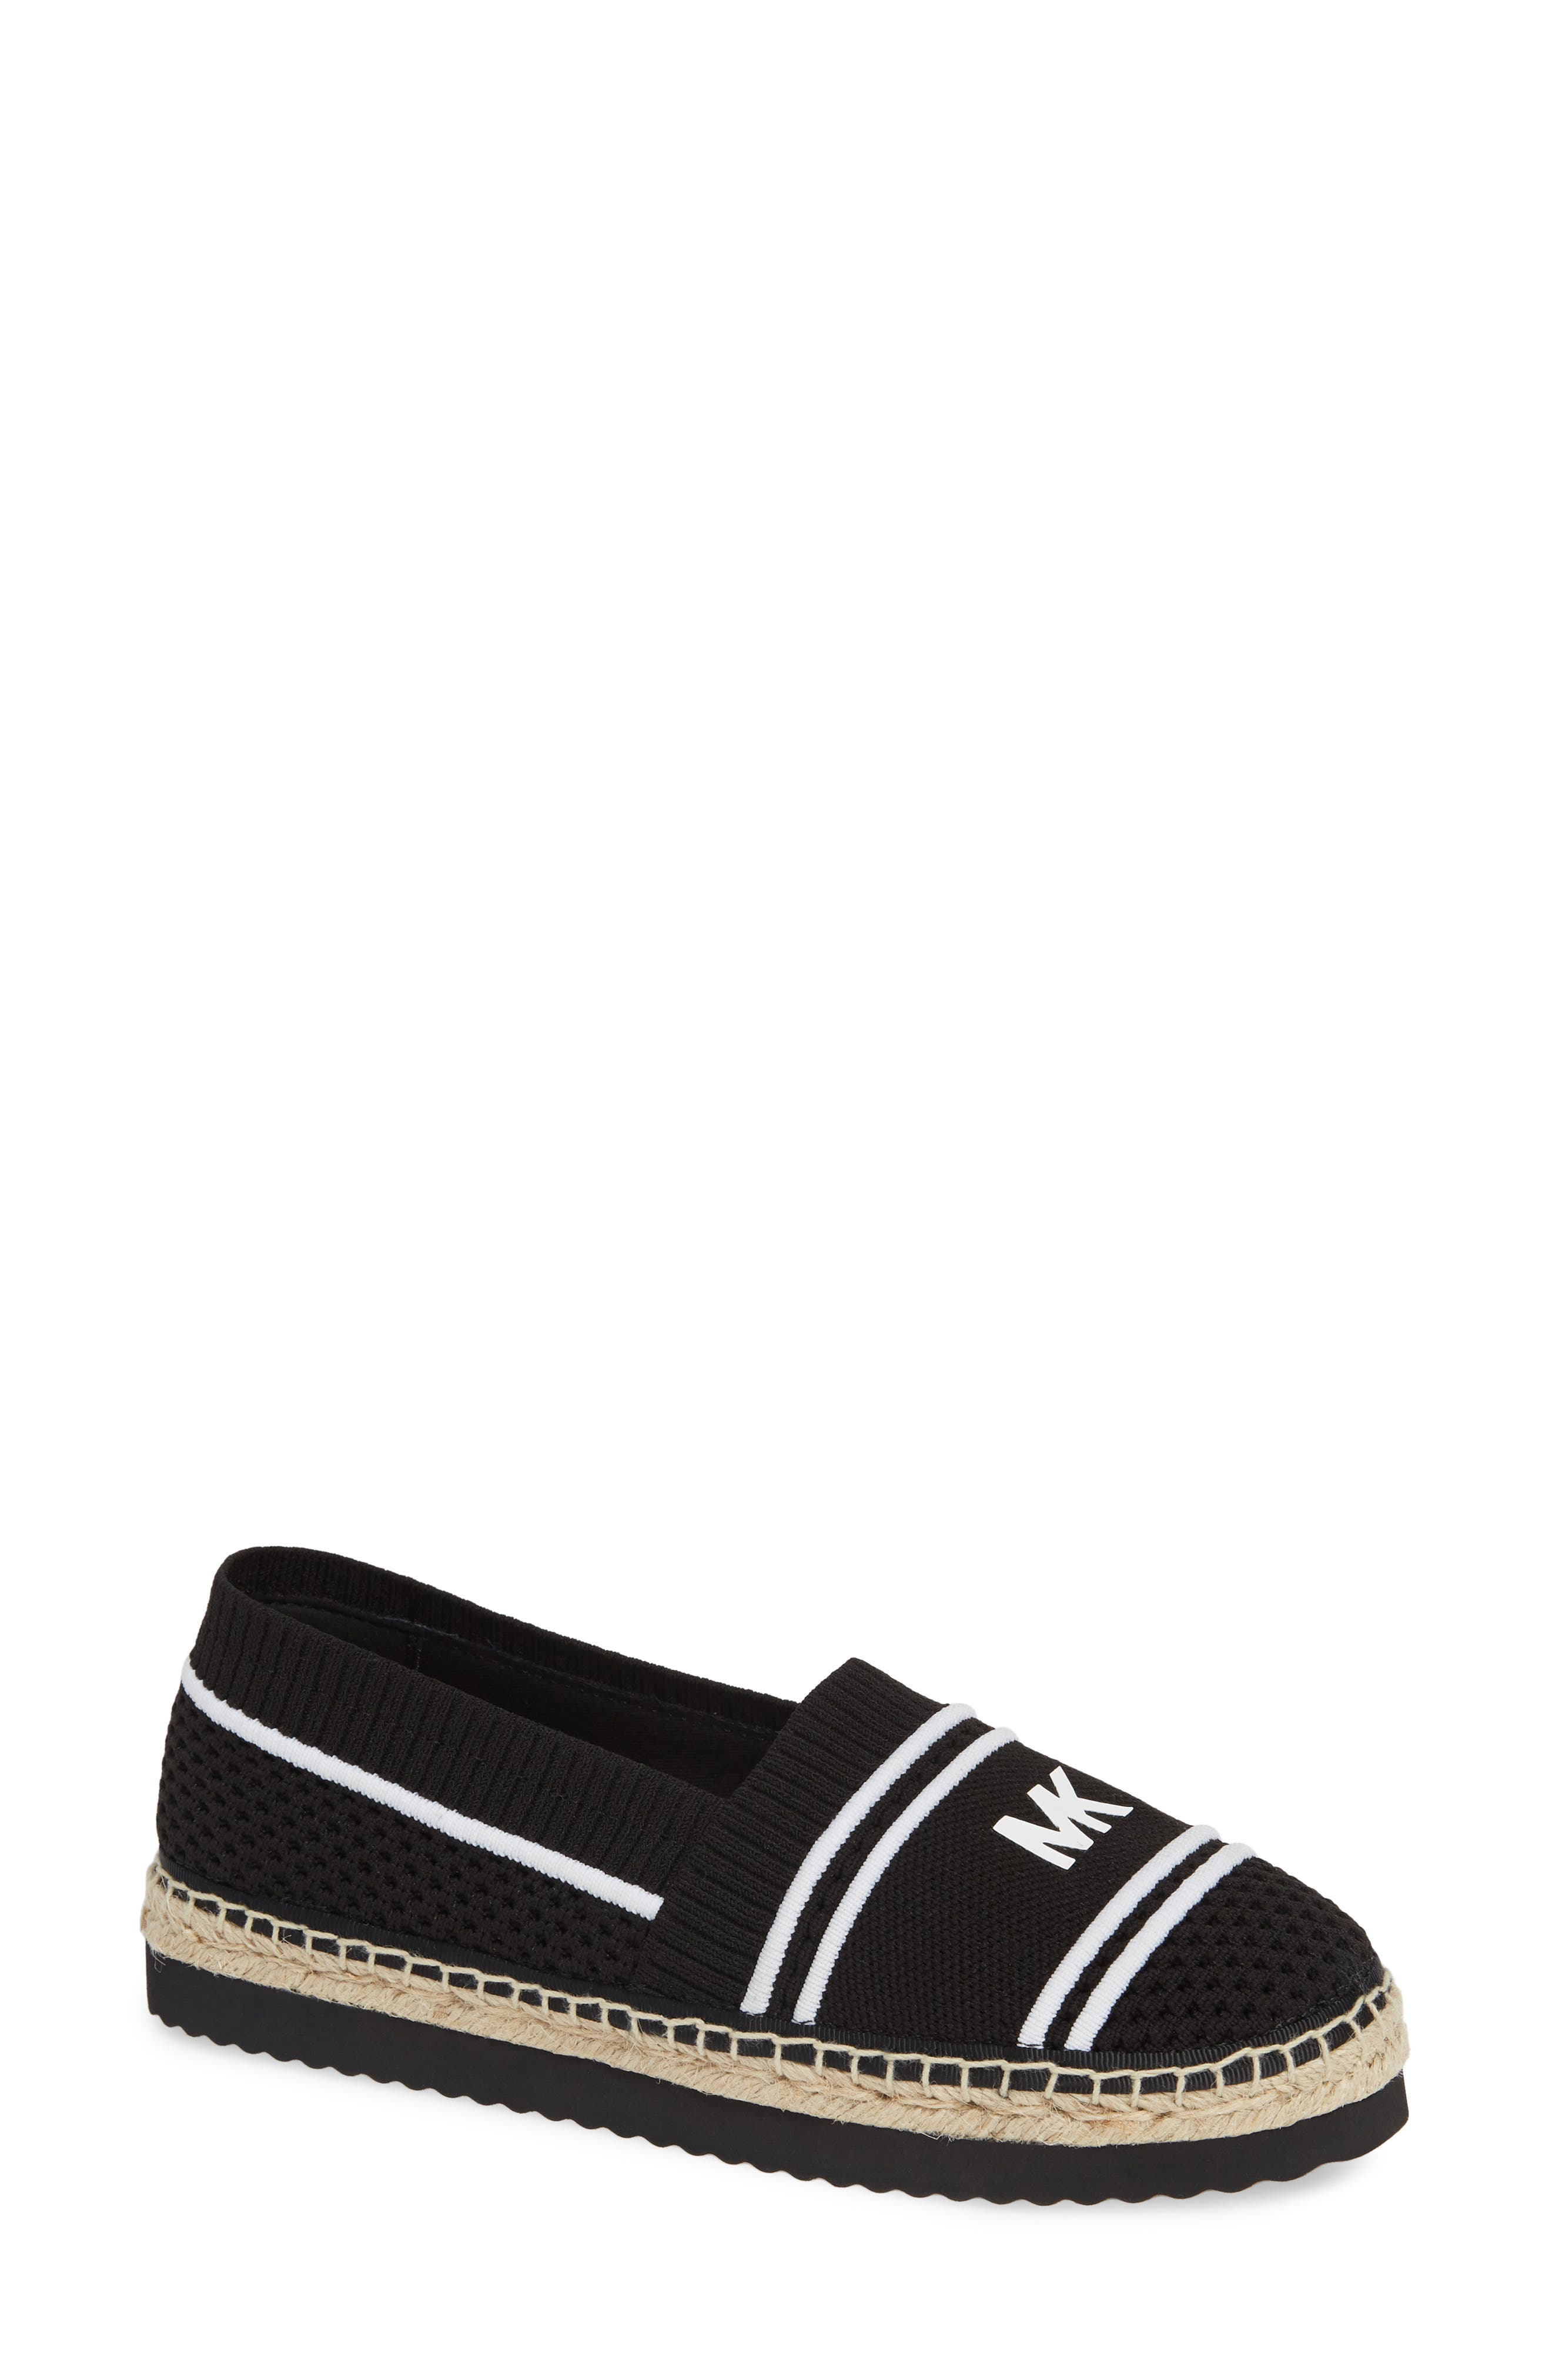 Raya Espadrille in Black Fabric